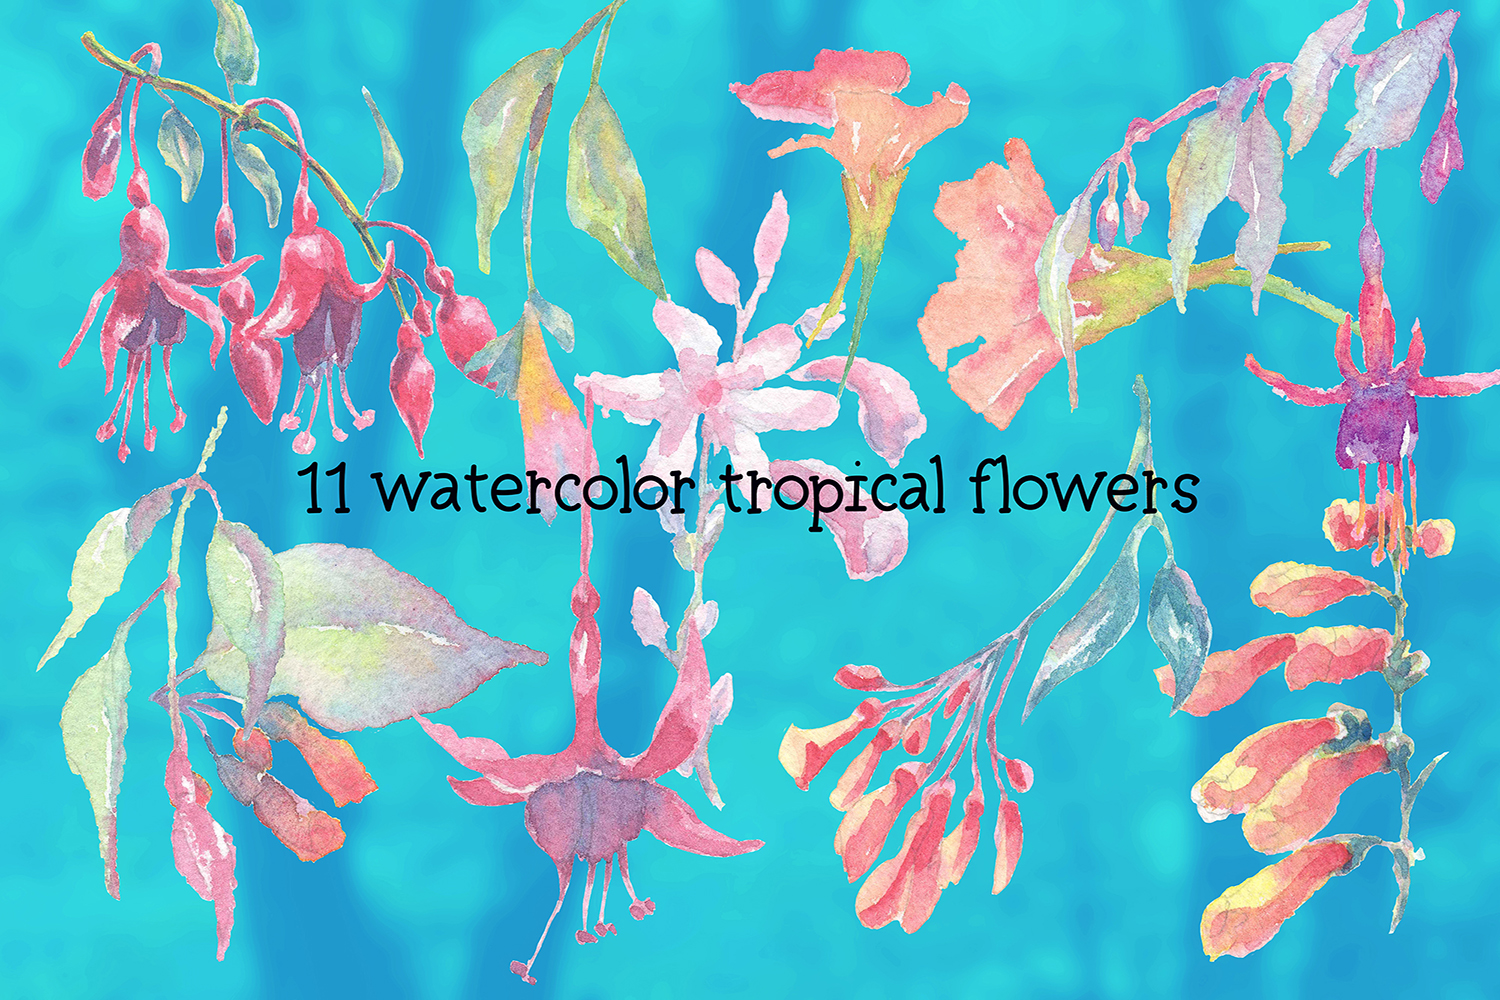 hummingbirds & tropical flowers watercolor clipart example image 5